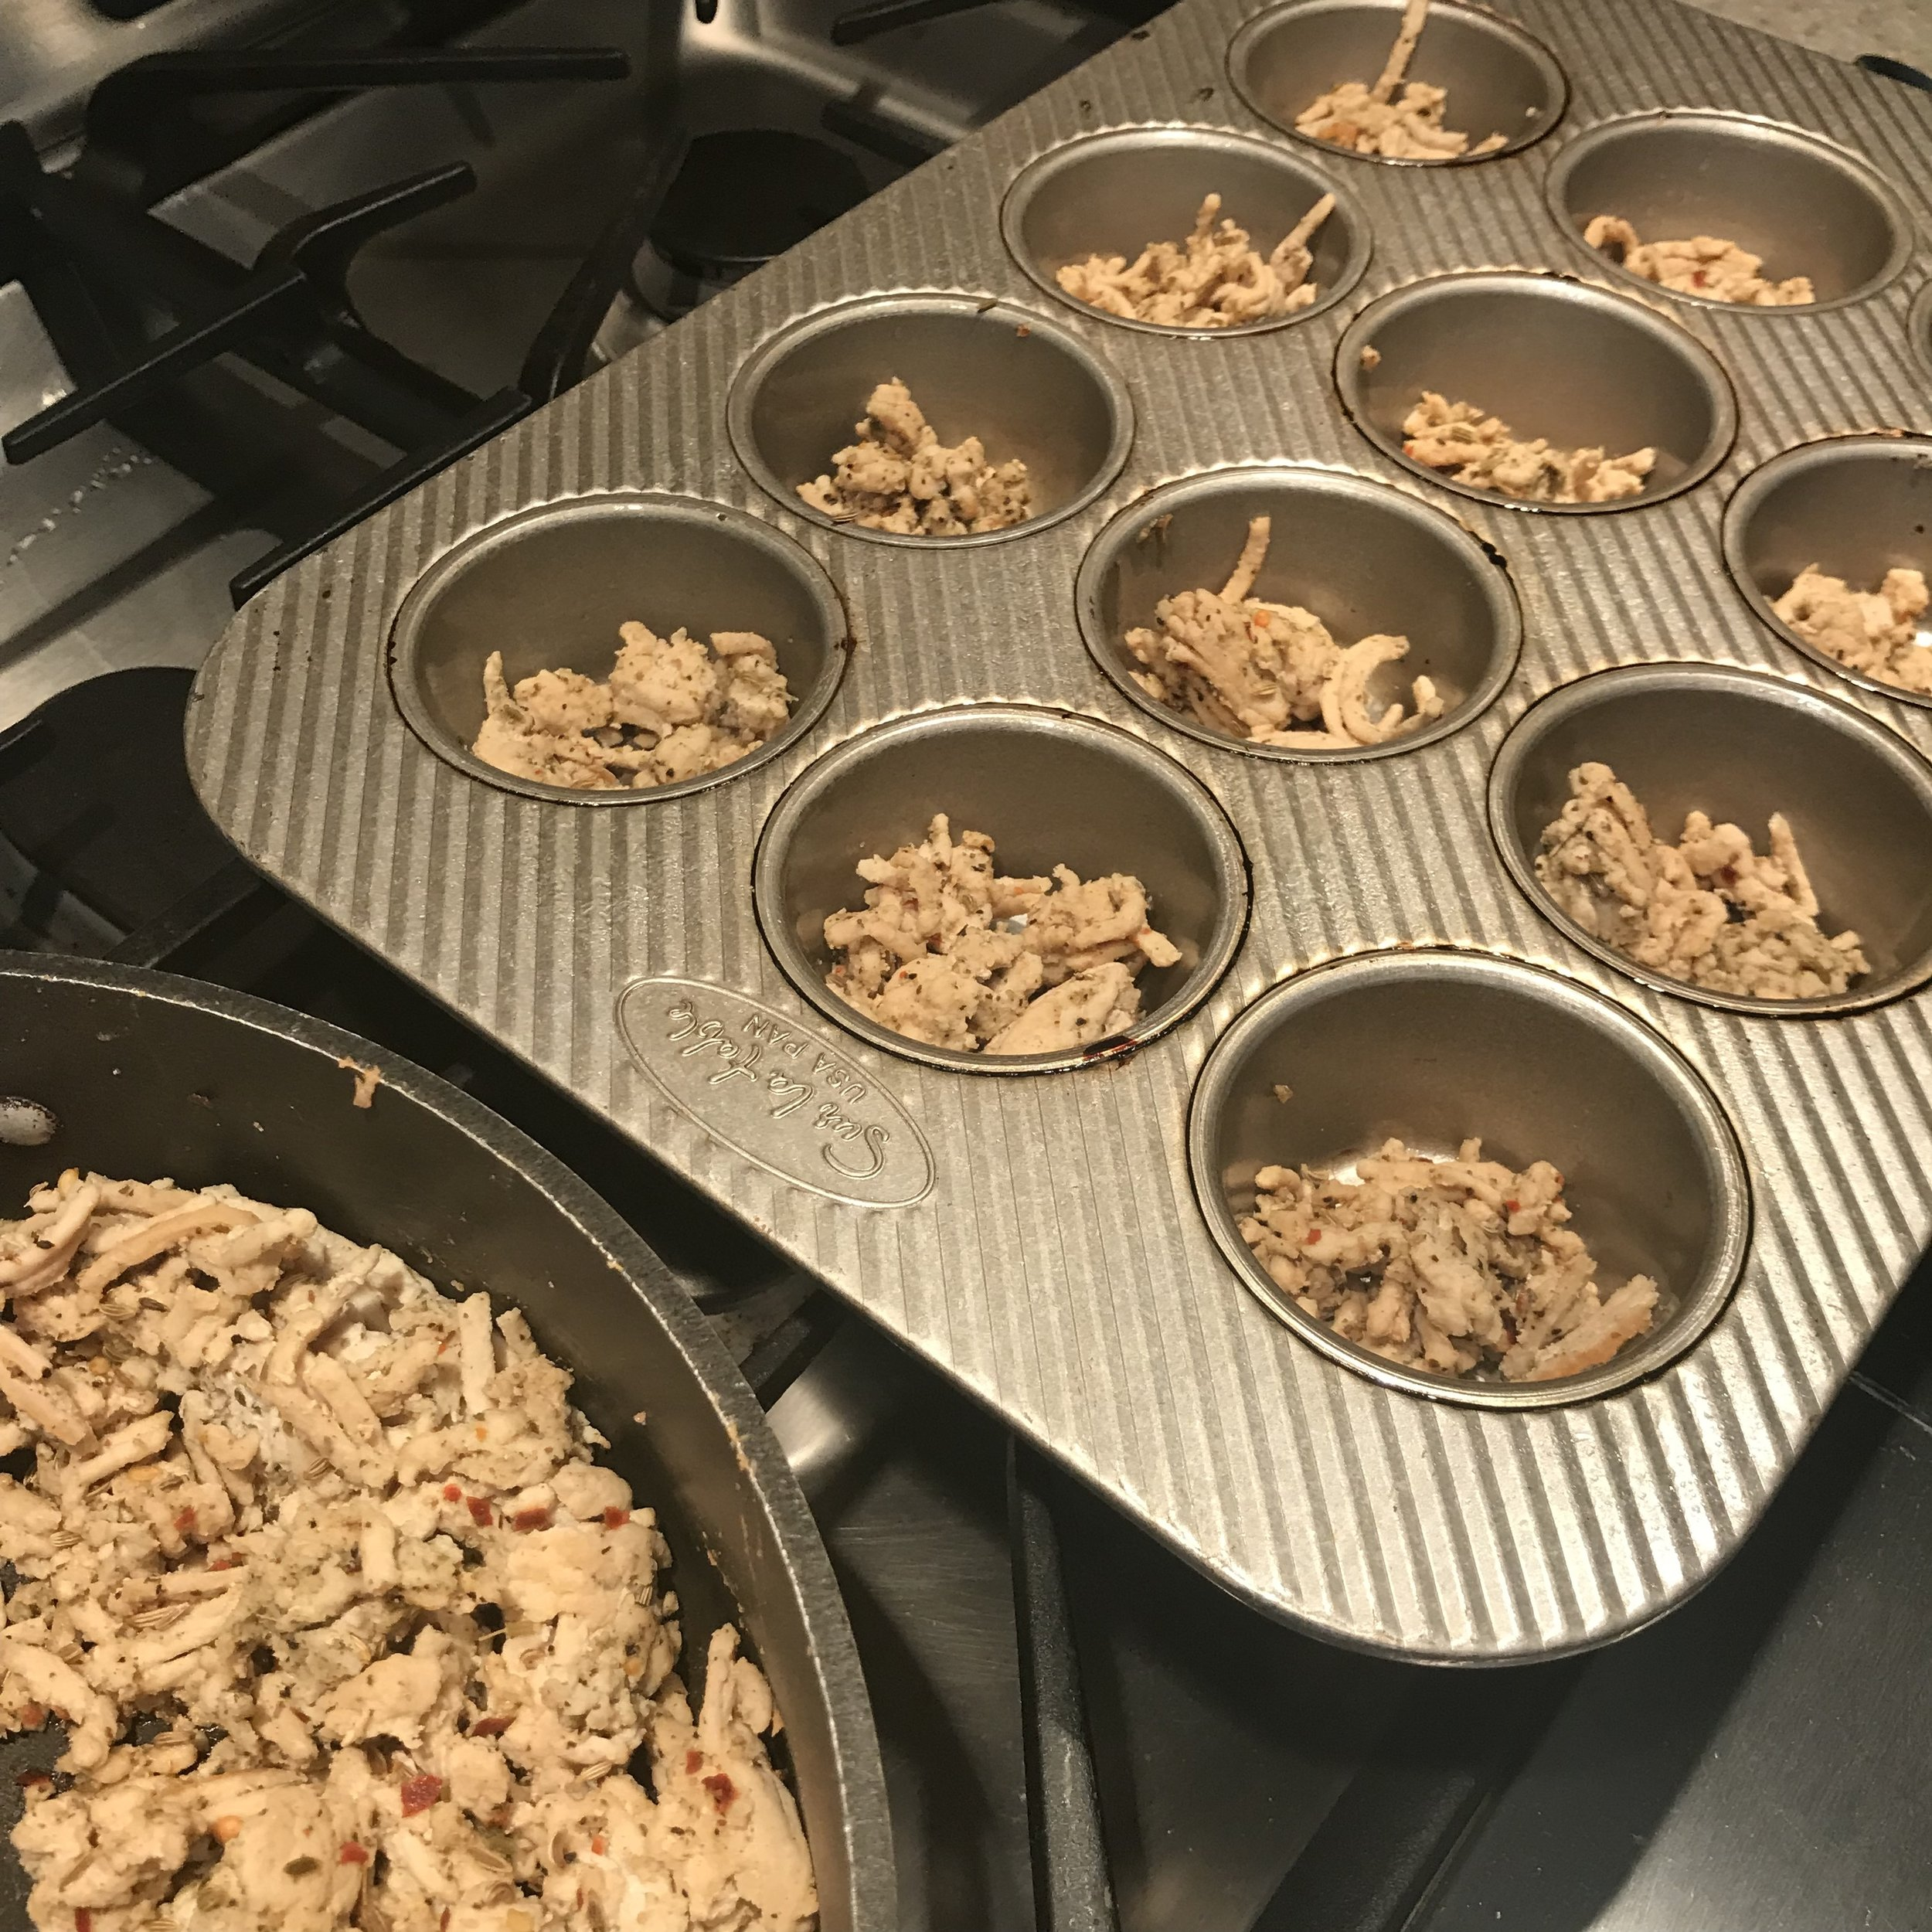 Add breakfast sausage crumble to greased cupcake pans. I use coconut oil spray.